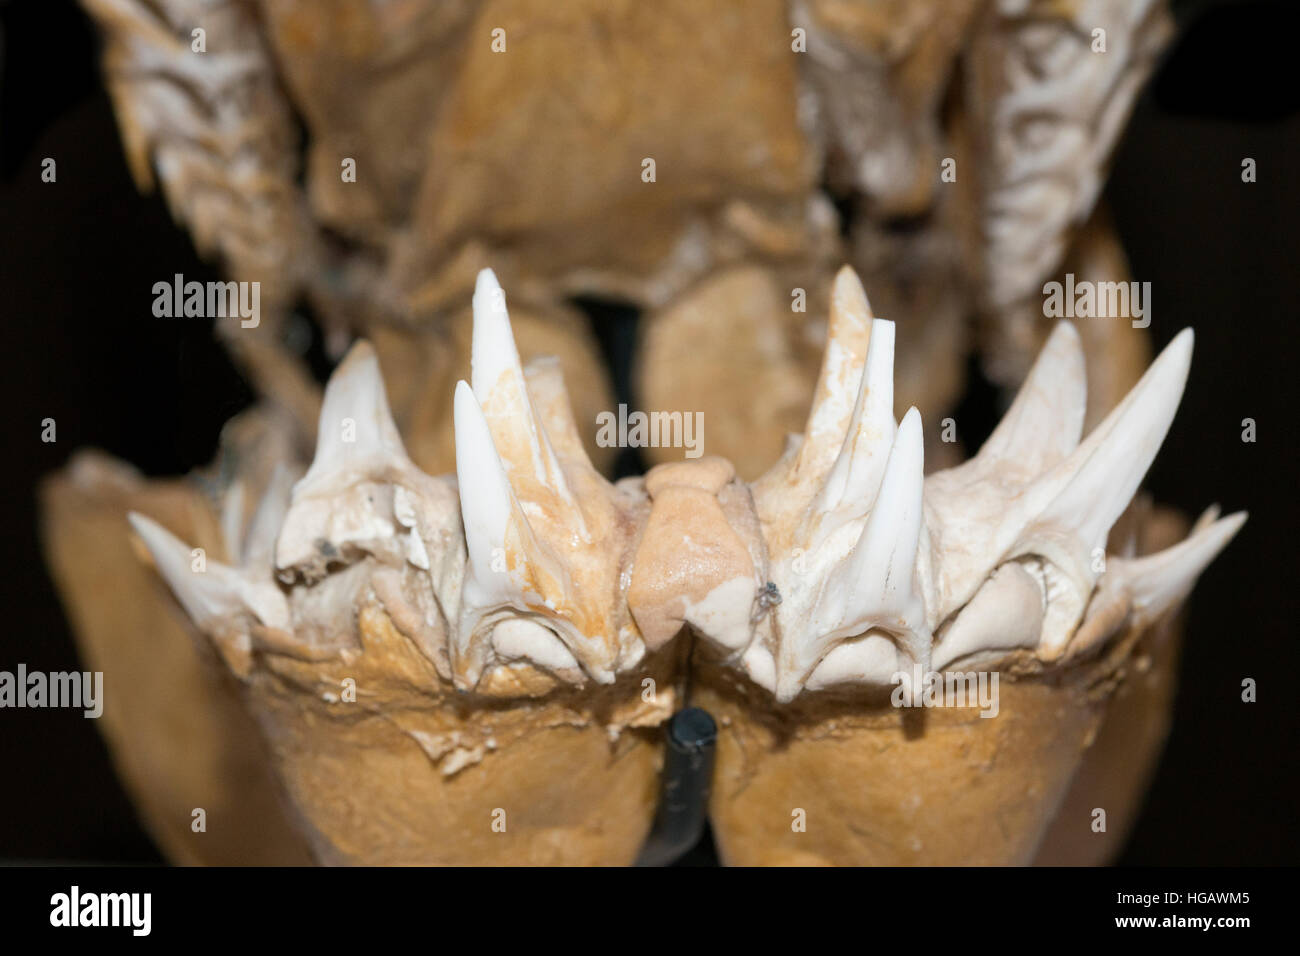 mako shark teeth stock photos mako shark teeth stock images alamy